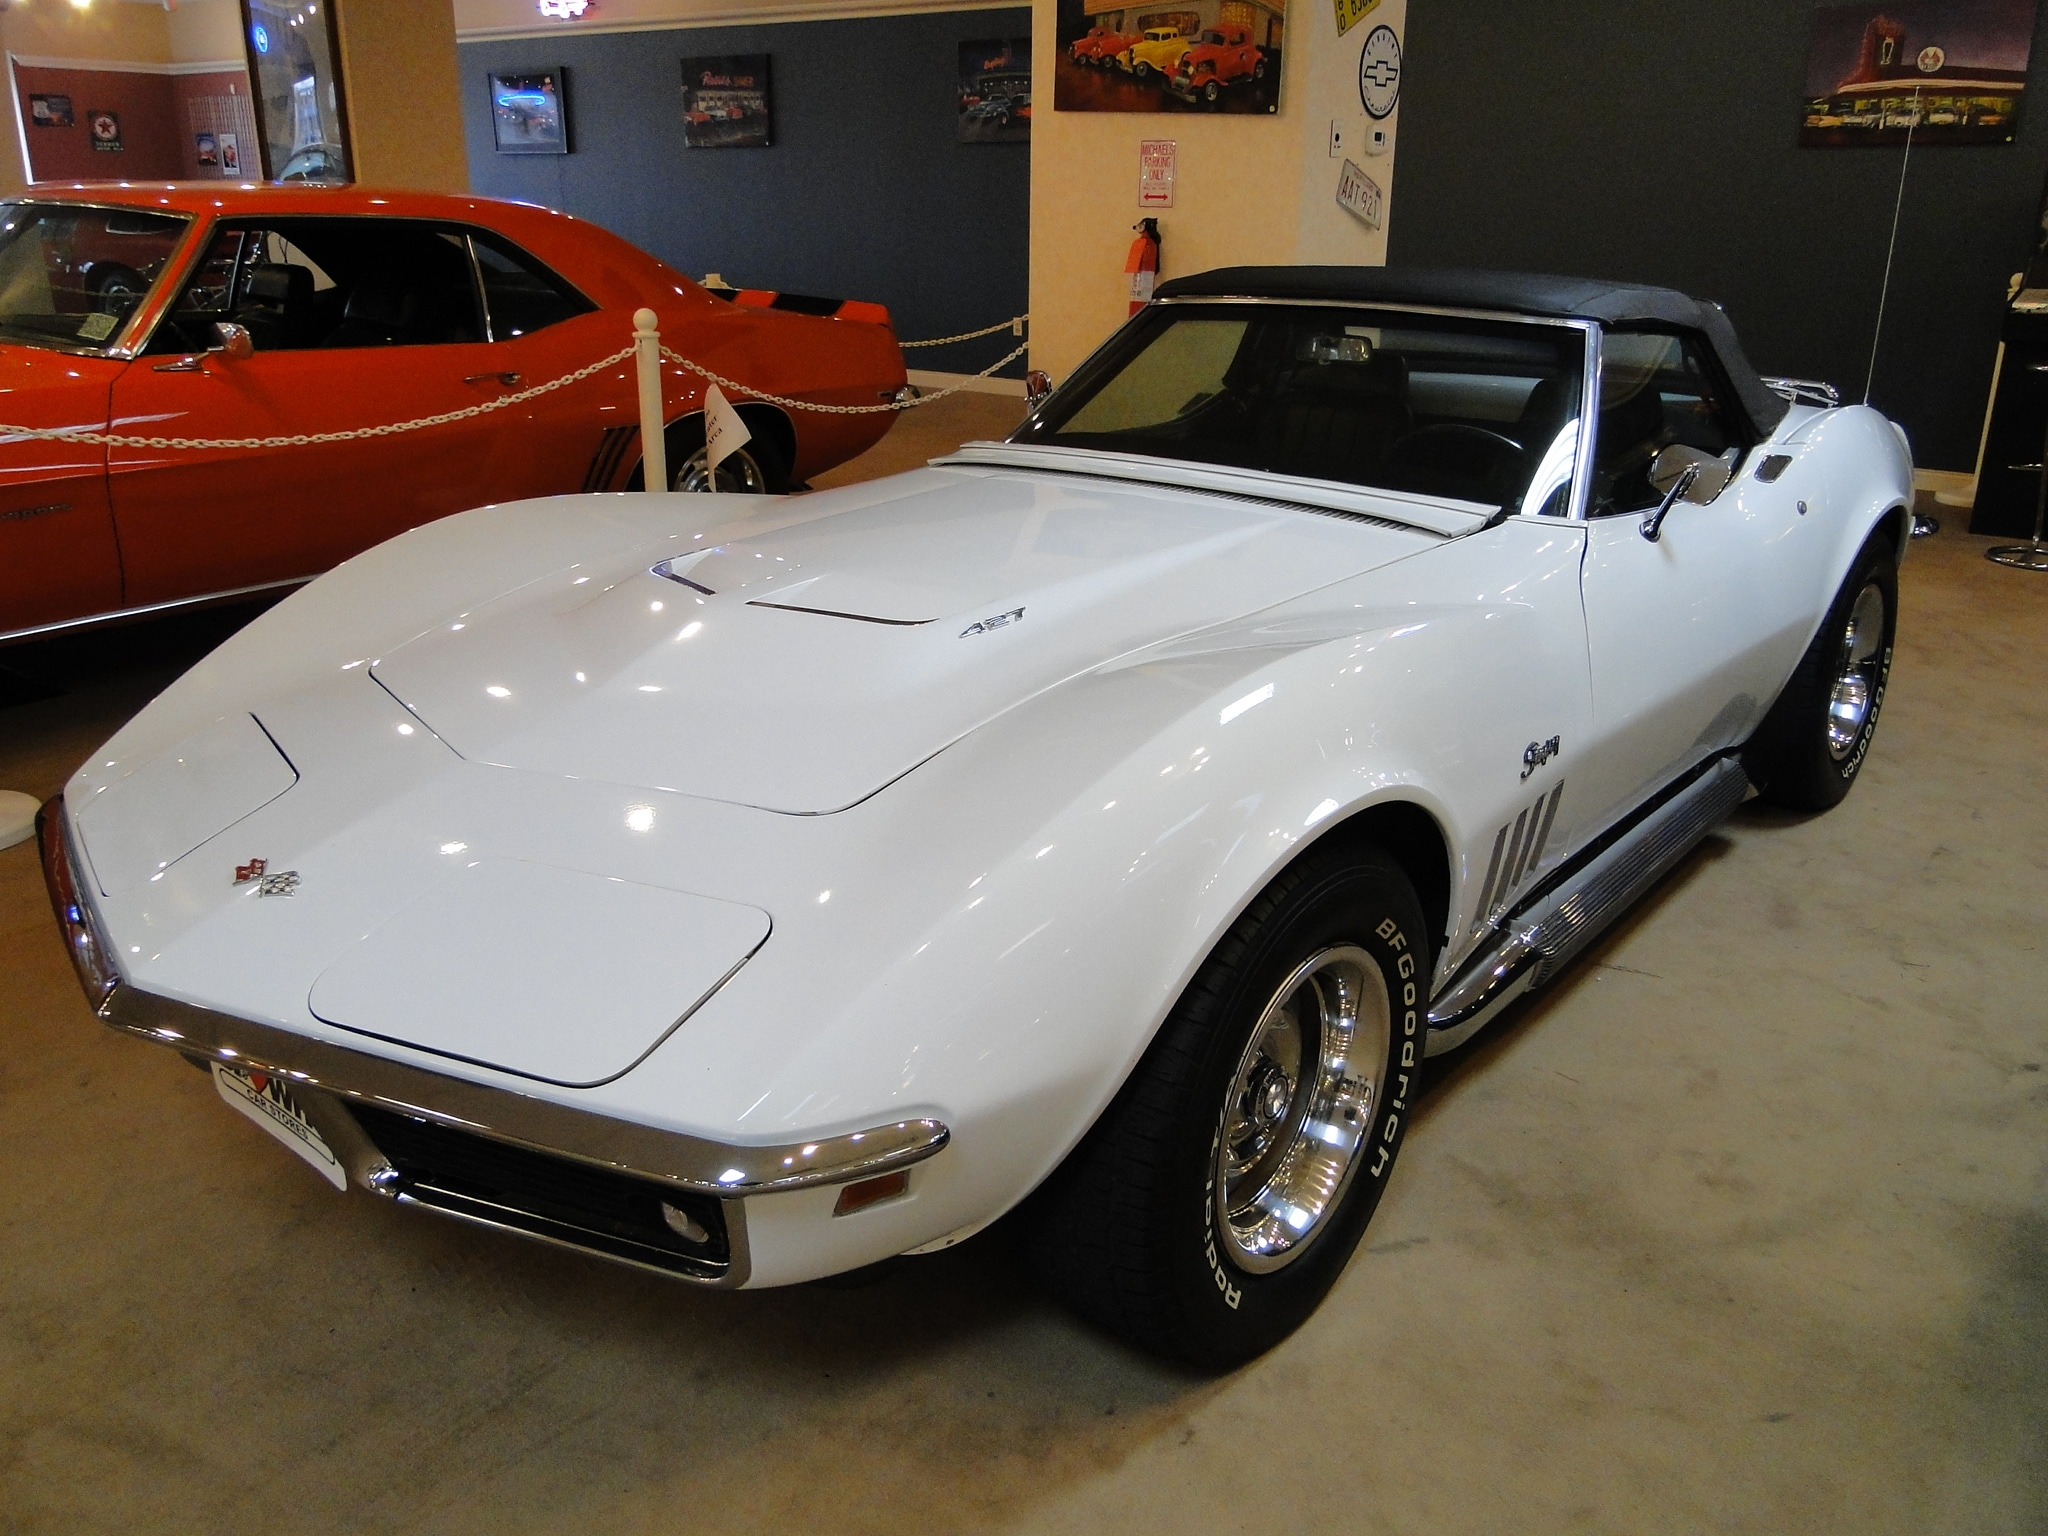 used 1969 chevrolet corvette for sale glen burnie md. Cars Review. Best American Auto & Cars Review